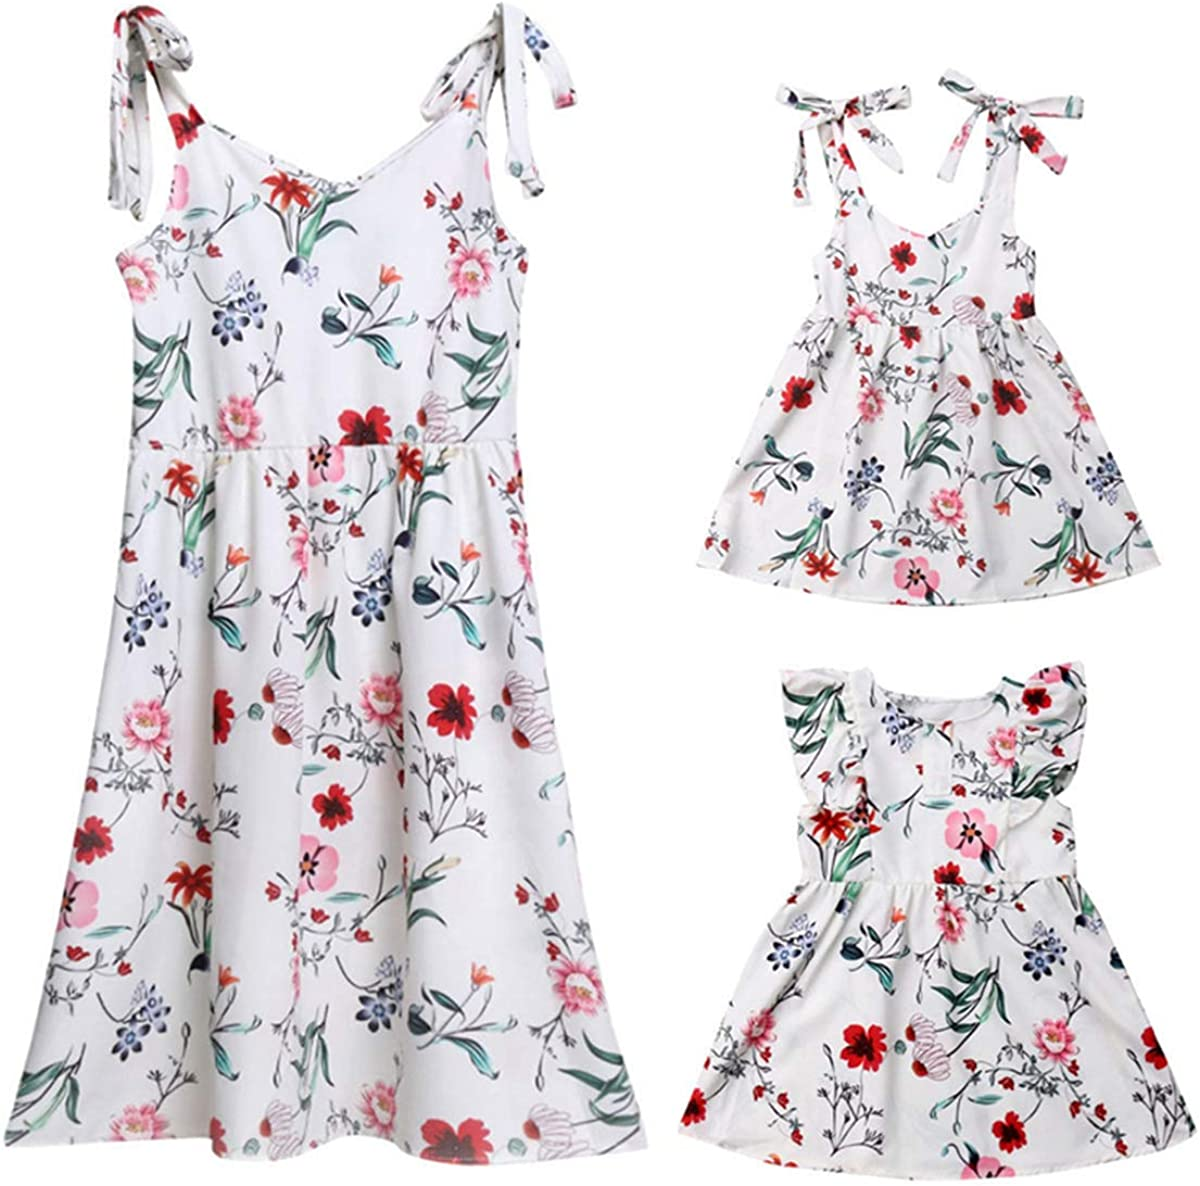 Mommy and Me Floral Printed Shoulder-Straps Dresses Summer Floral Sundress Swing Family Matching Beach Dress